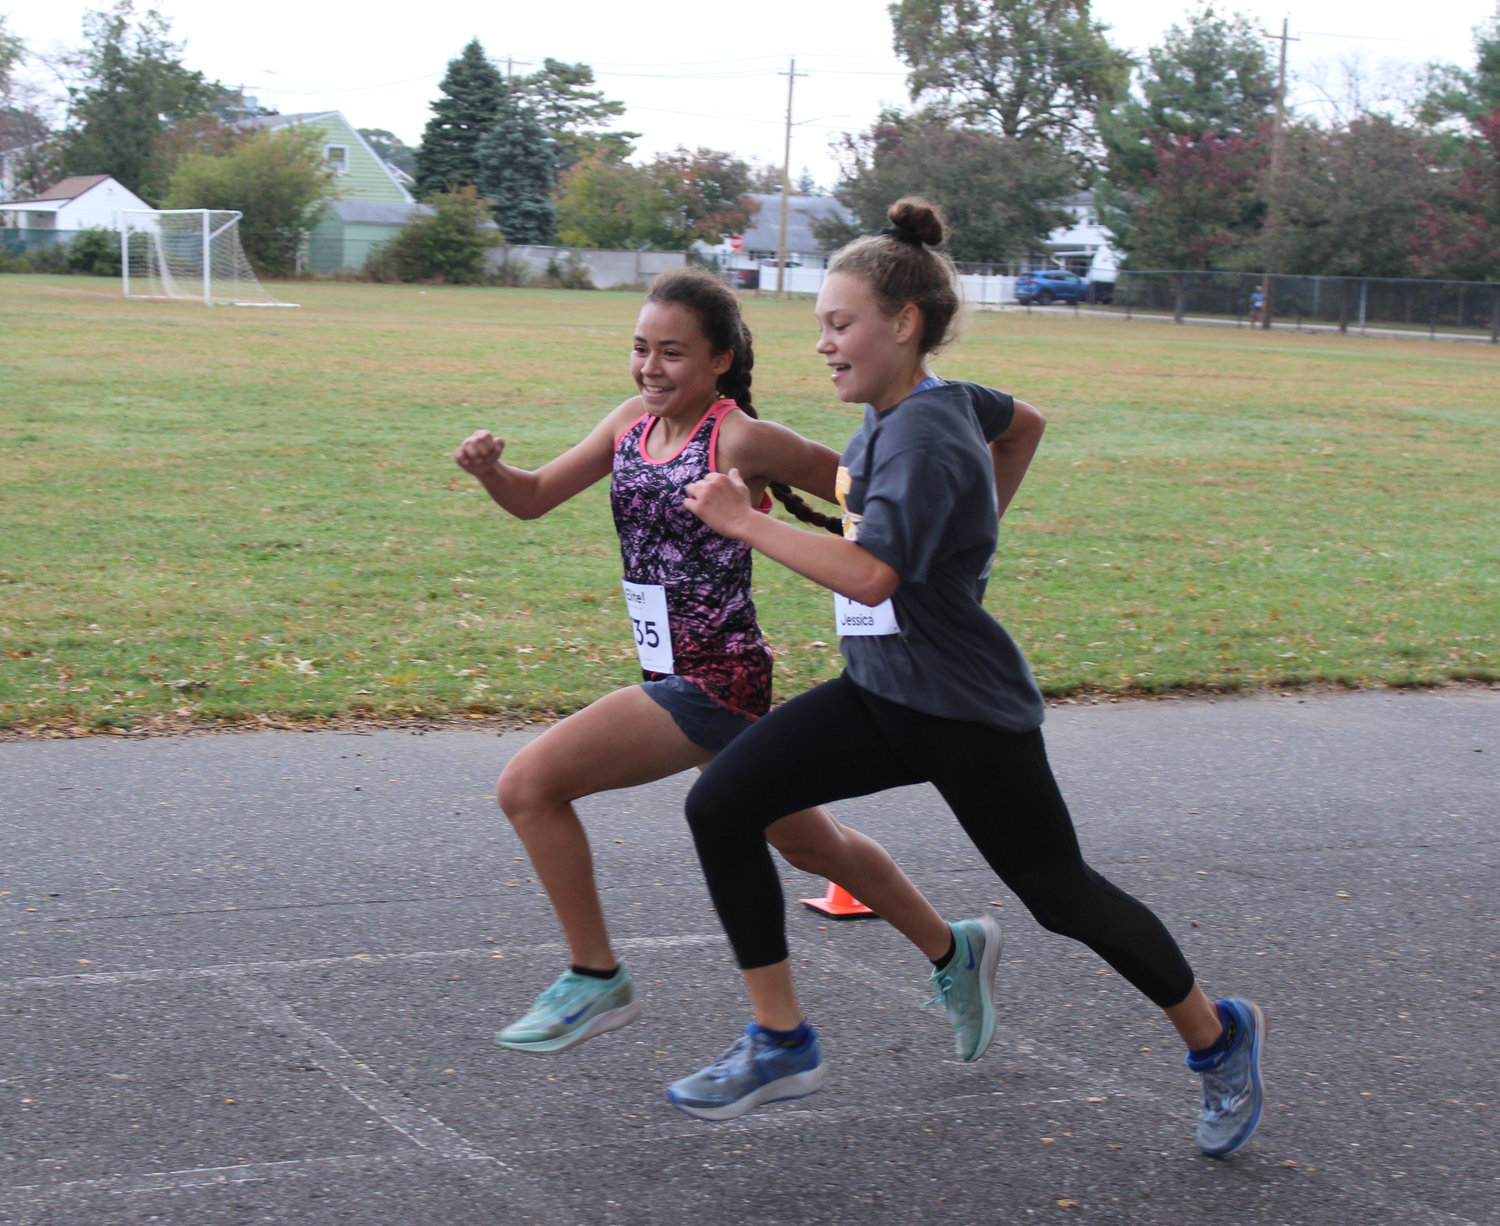 Ella Foster and Leslie Villafuerte, both 15, neared the finish line, above. Both runners are on the East Meadow High School cross-country team, and entered the race for some friendly competition.